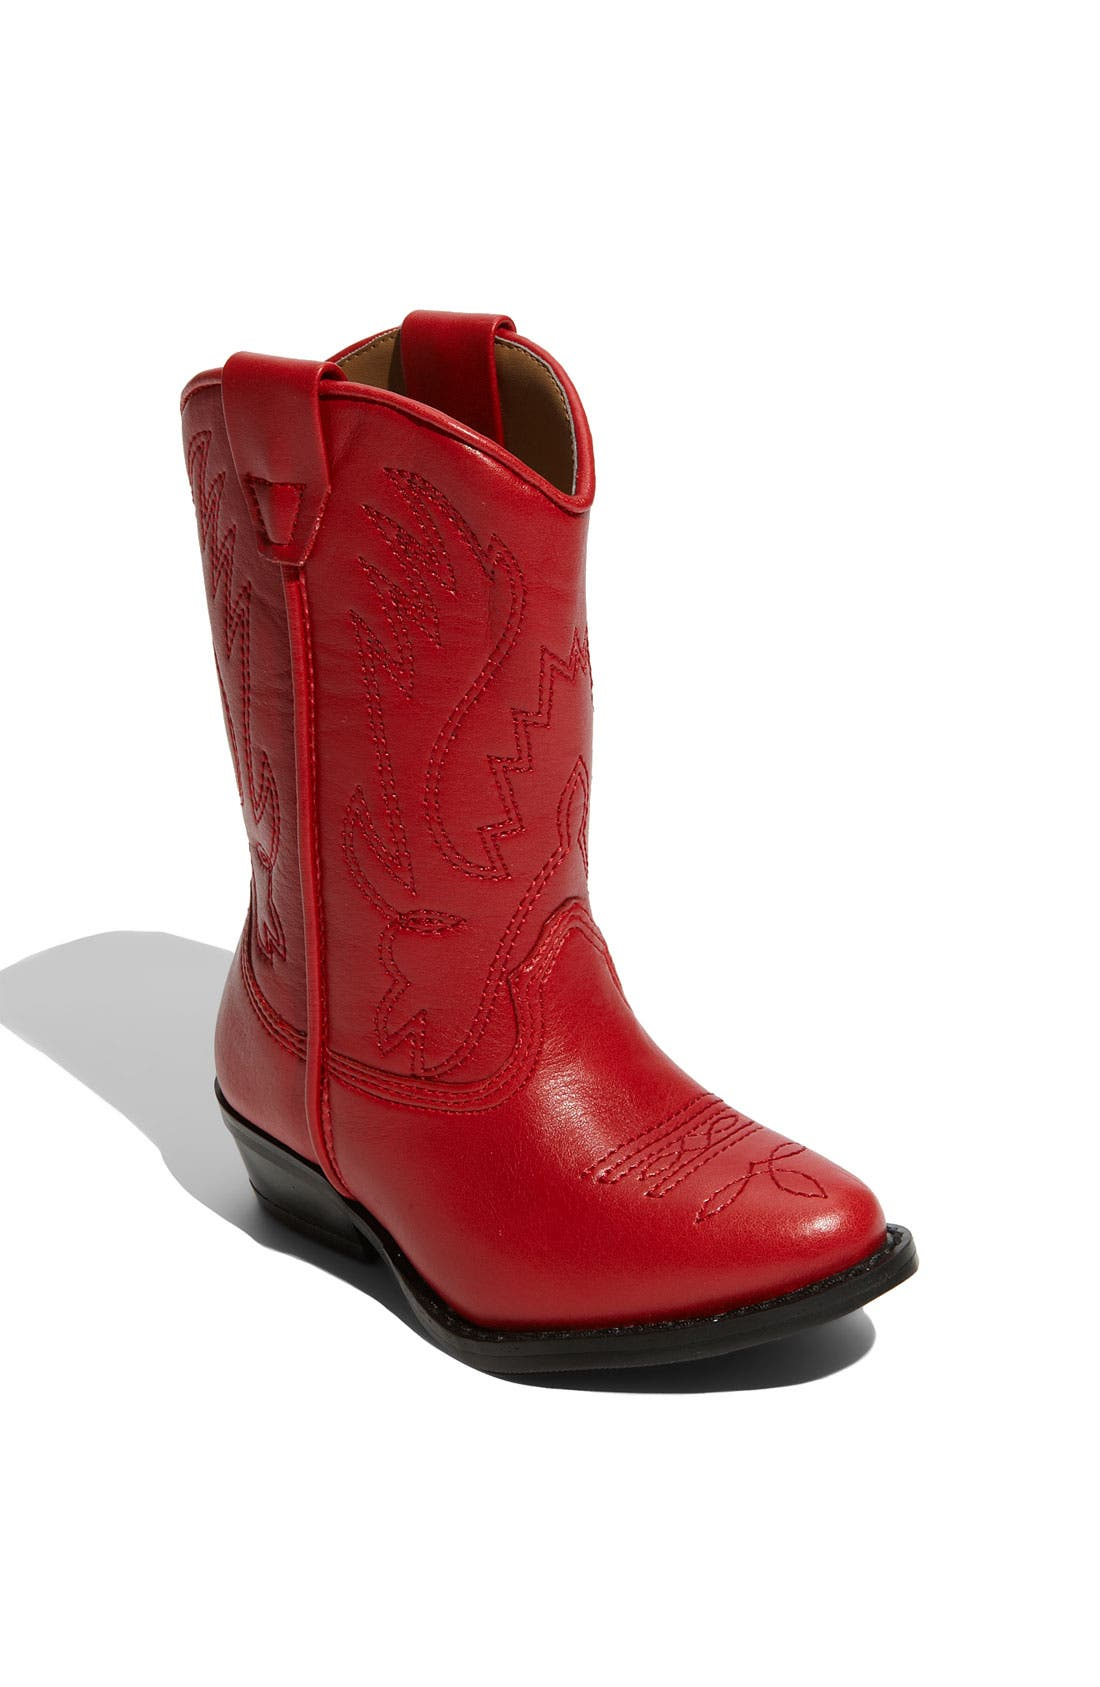 Alternate Image 1 Selected - Nordstrom 'Cassidy' Faux Leather Boot (Toddler, Little Kid & Big Kid)